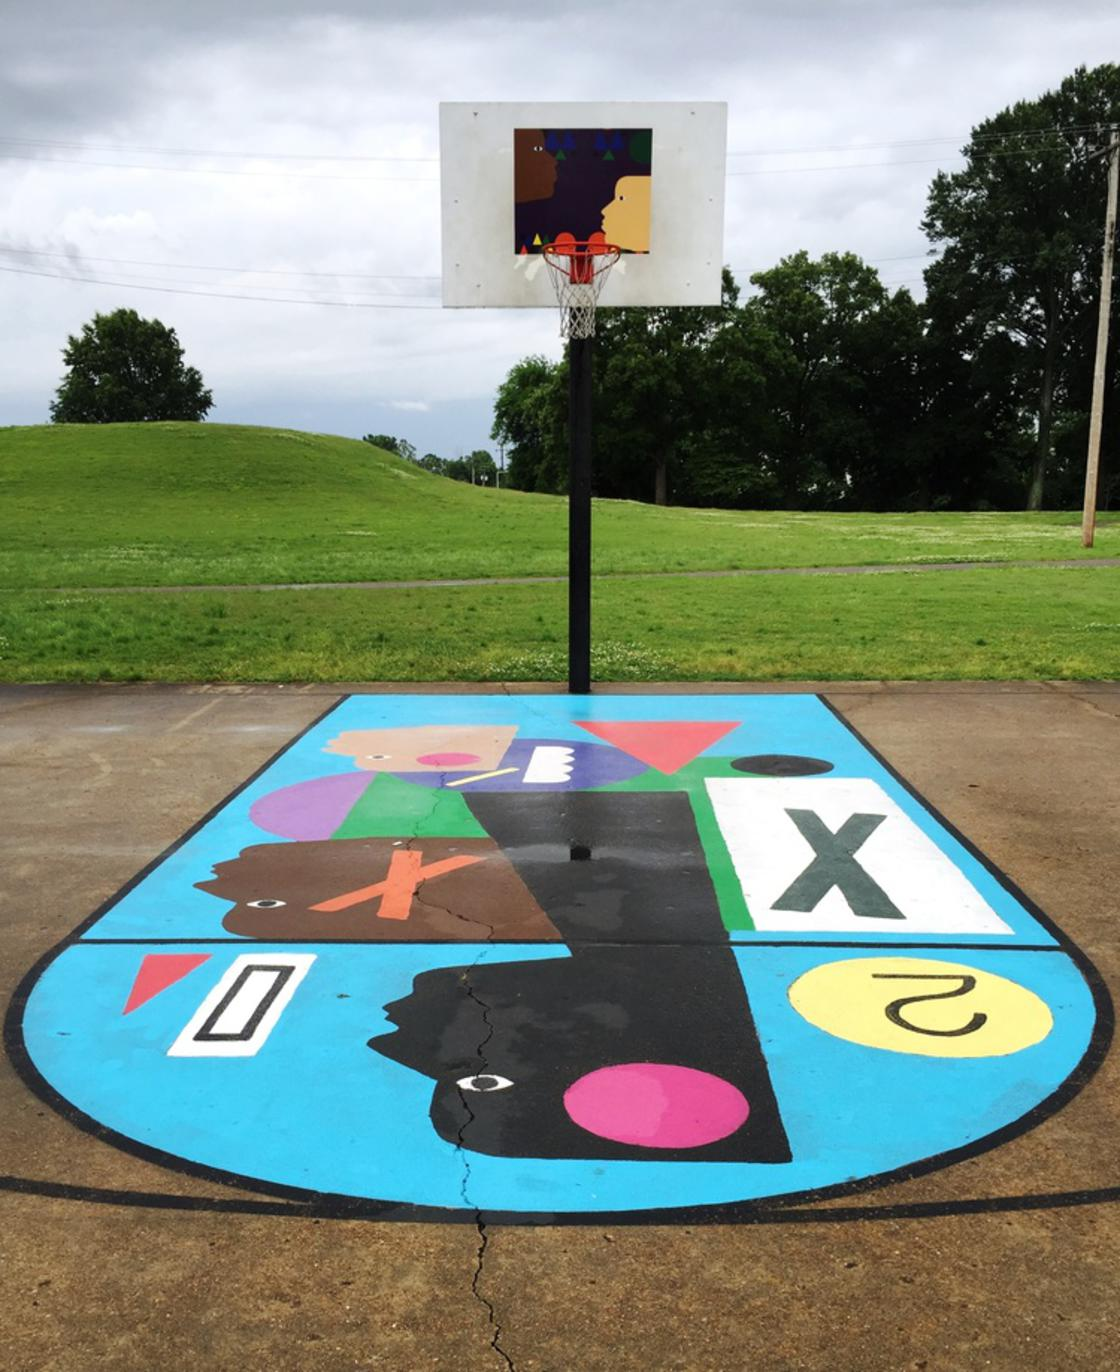 Project Backboard – Turning basketball playgrounds into works of art